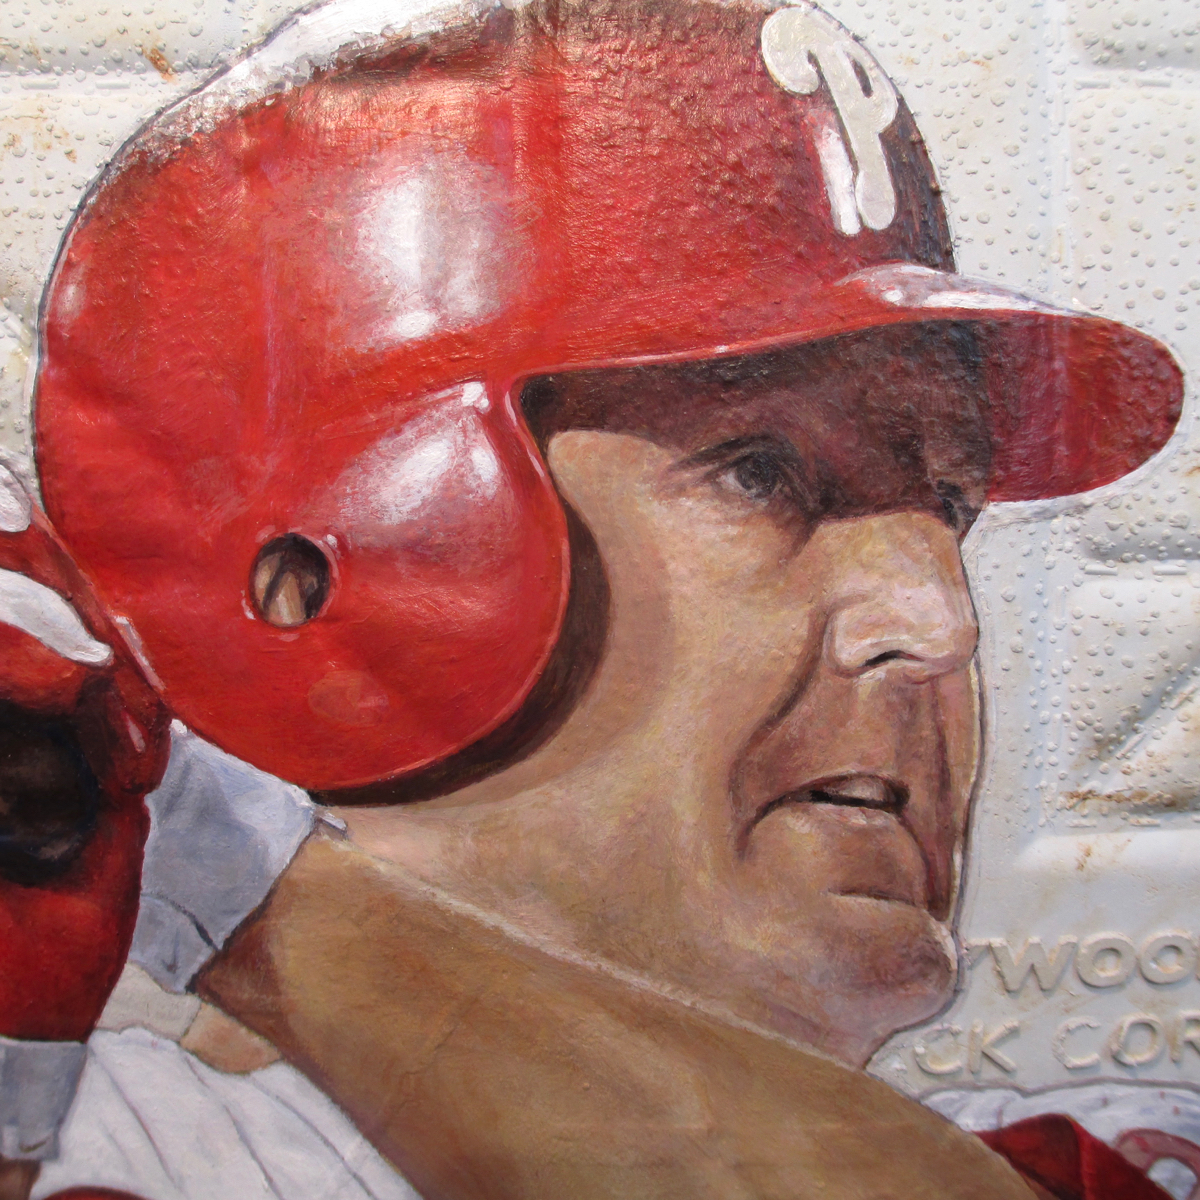 sean-kane-jim-thome-phillies-hall-of-fame-base-portrait-art-5249.jpg